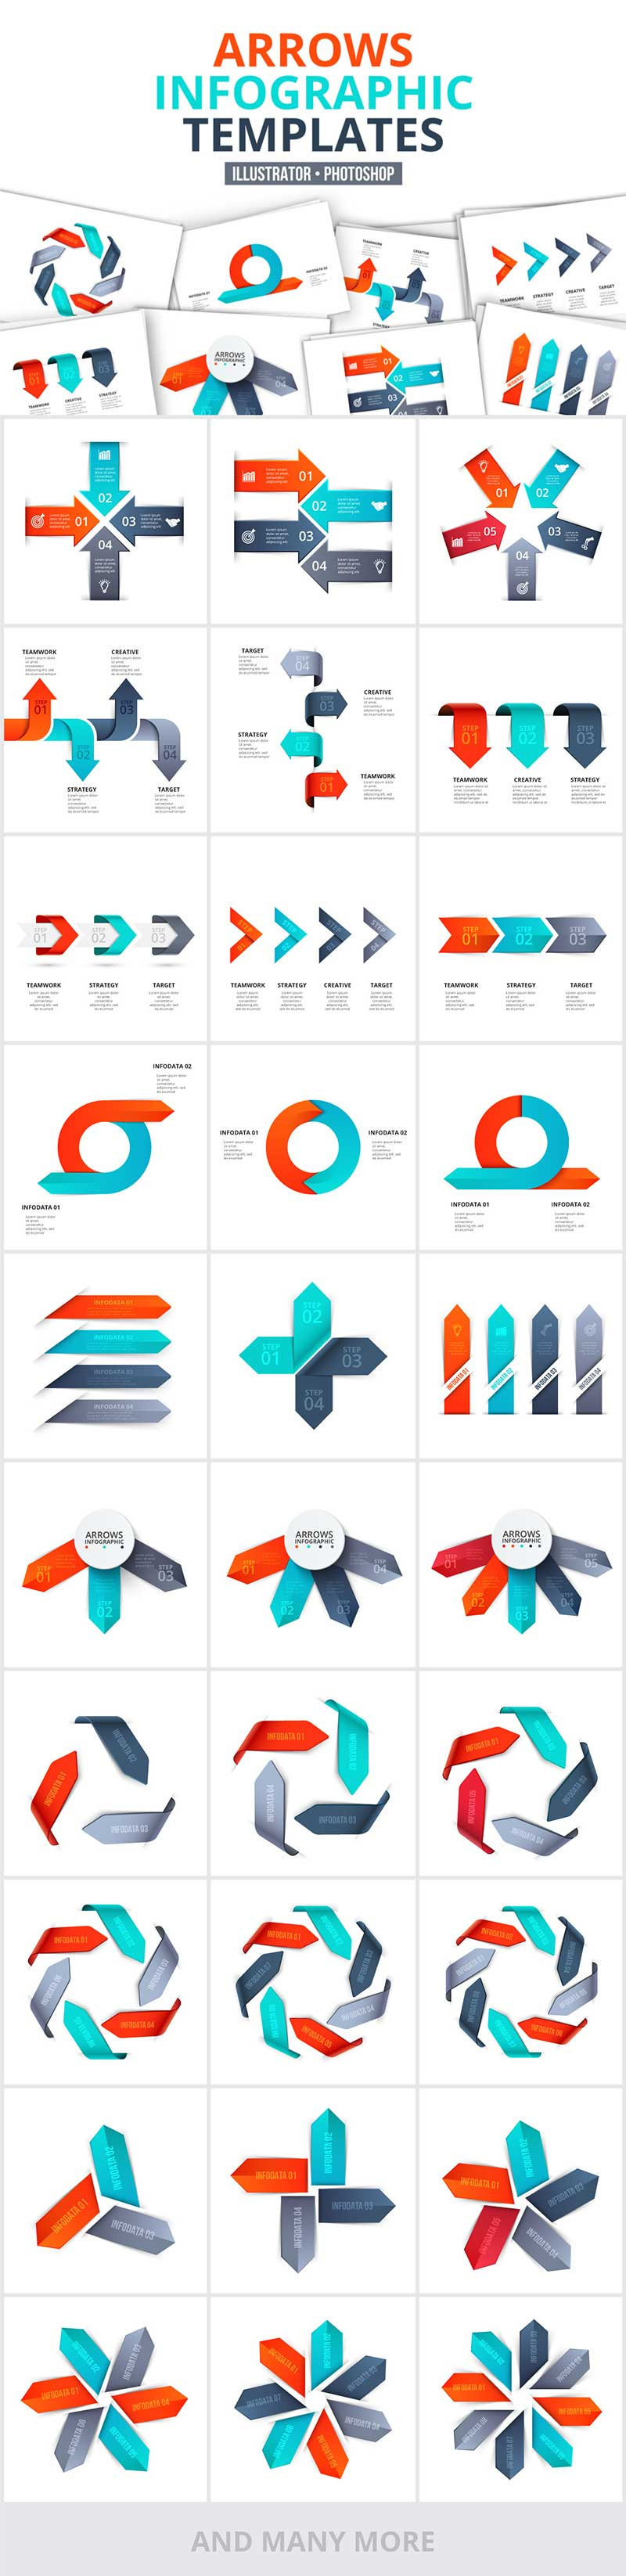 1200 Interactive Infographic Templates- 07_Arrows